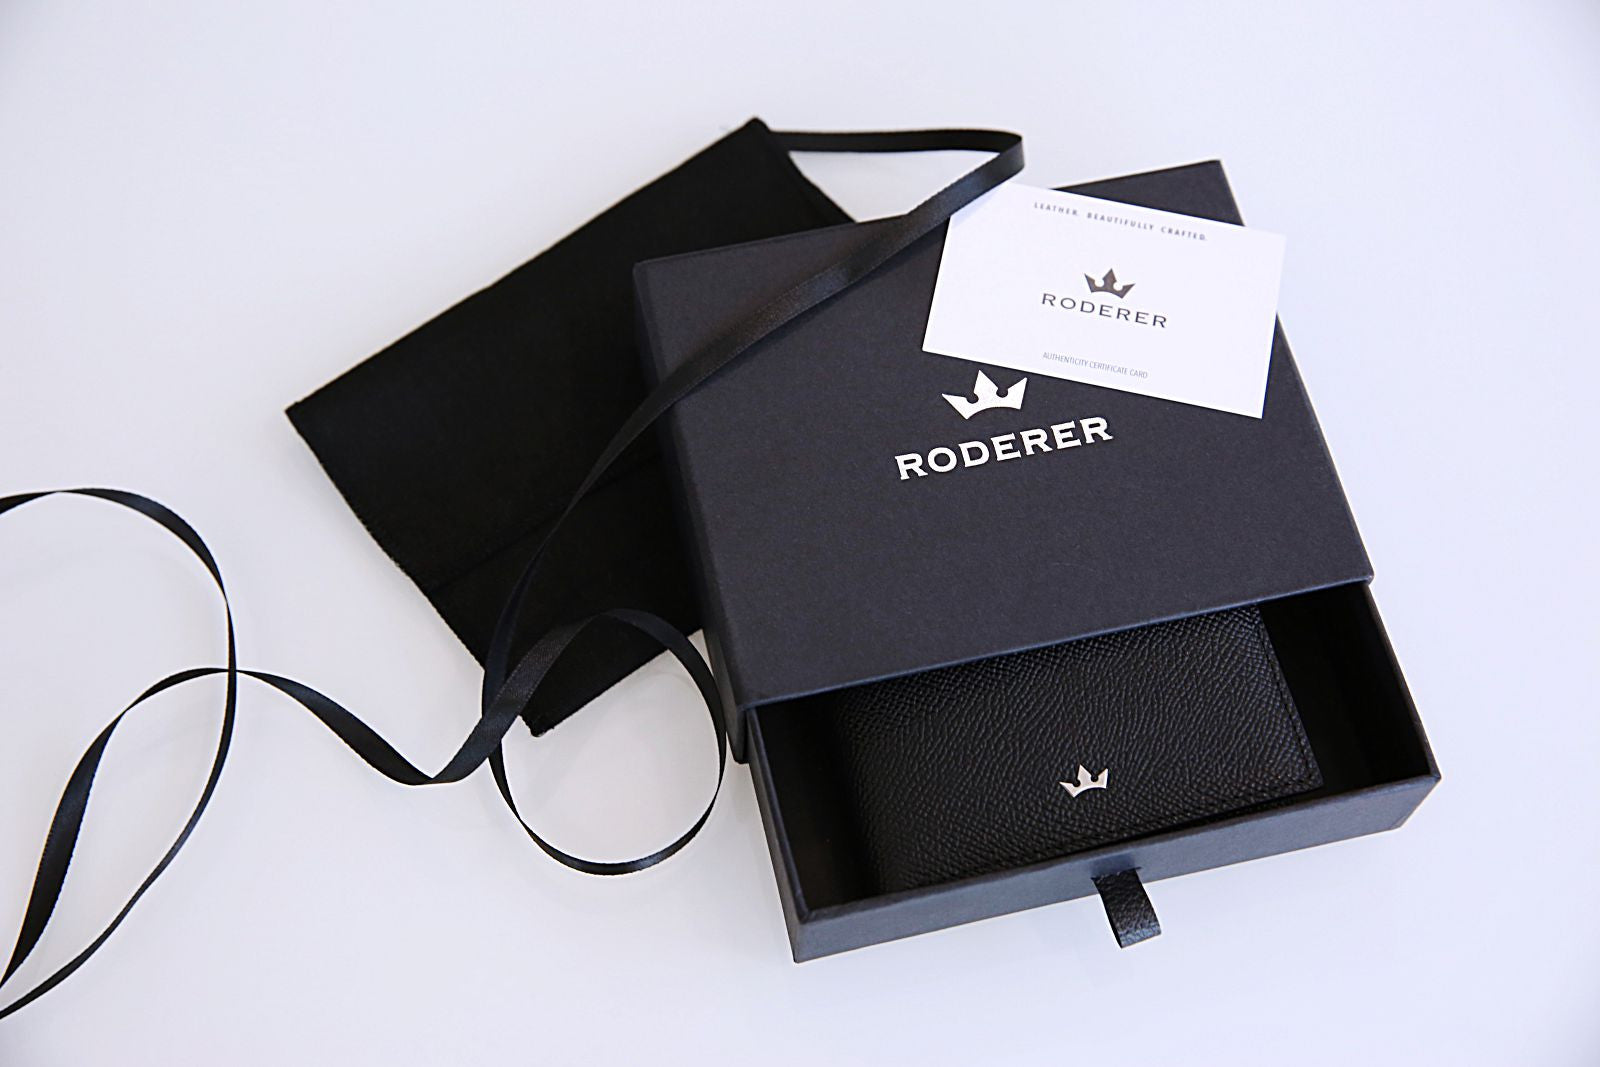 Roderer Loop Key Holder Milano Black Packaging